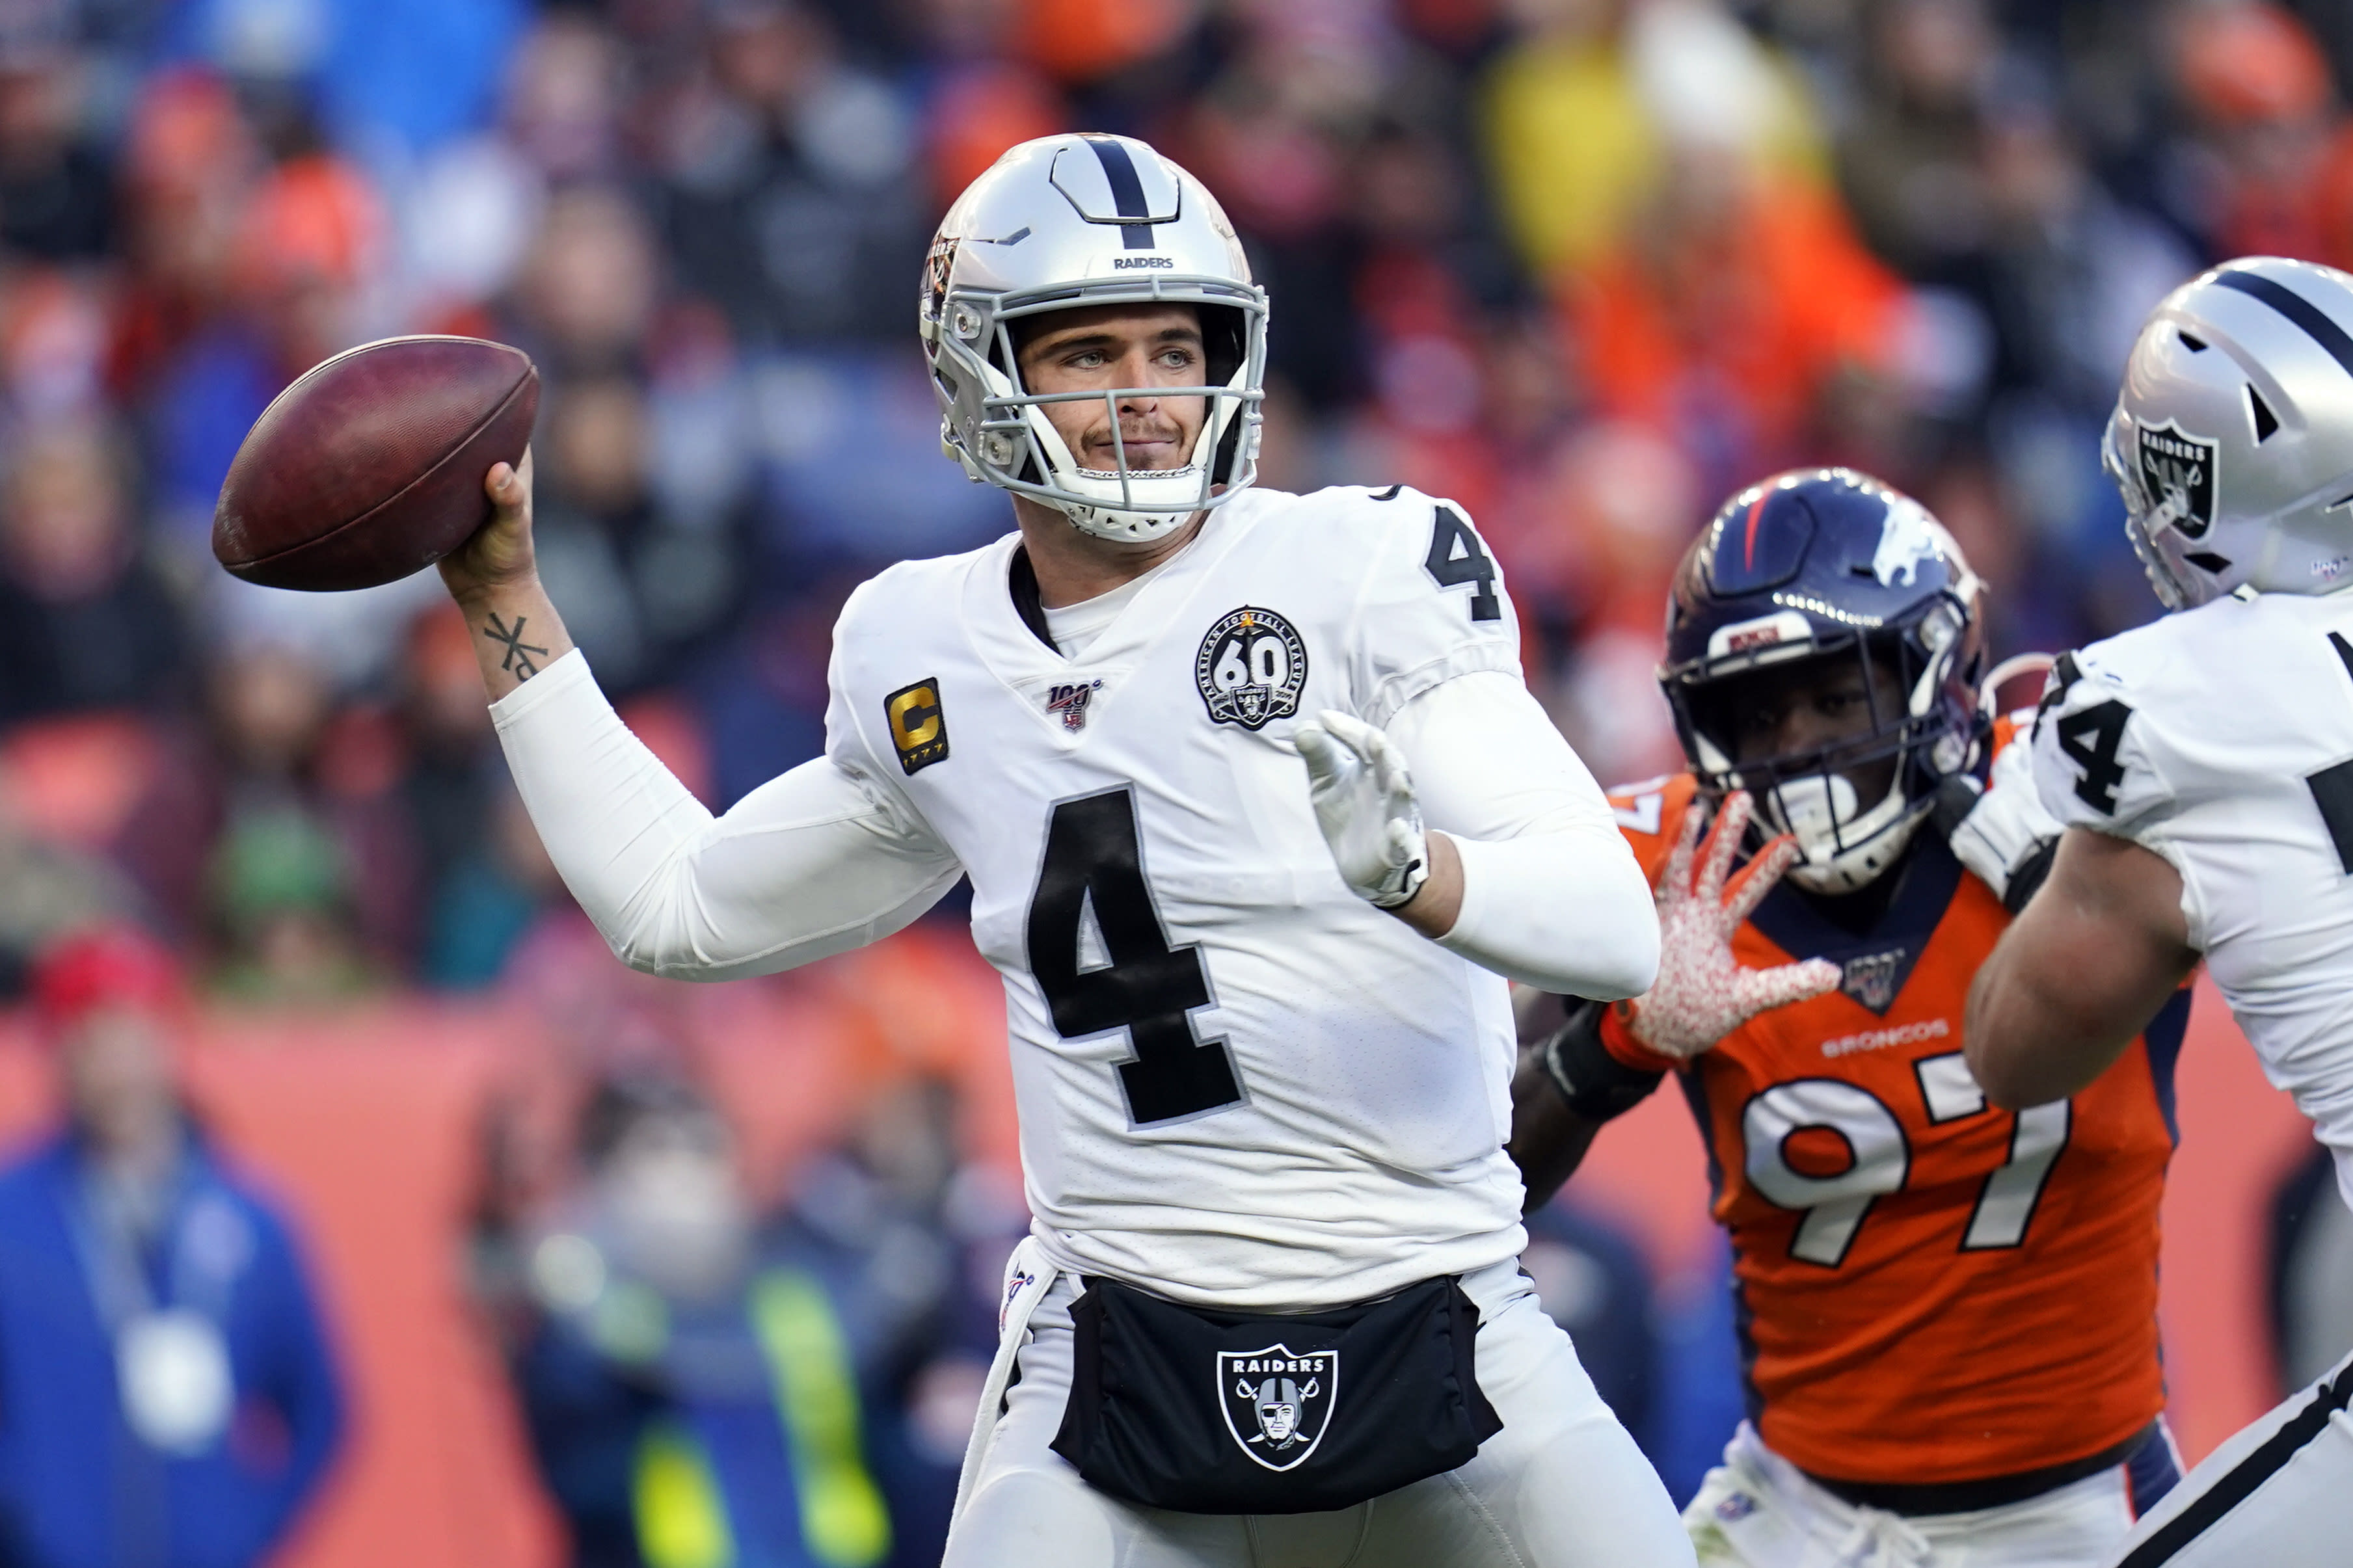 Raiders QB Derek Carr: 'I'm tired of being disrespected'